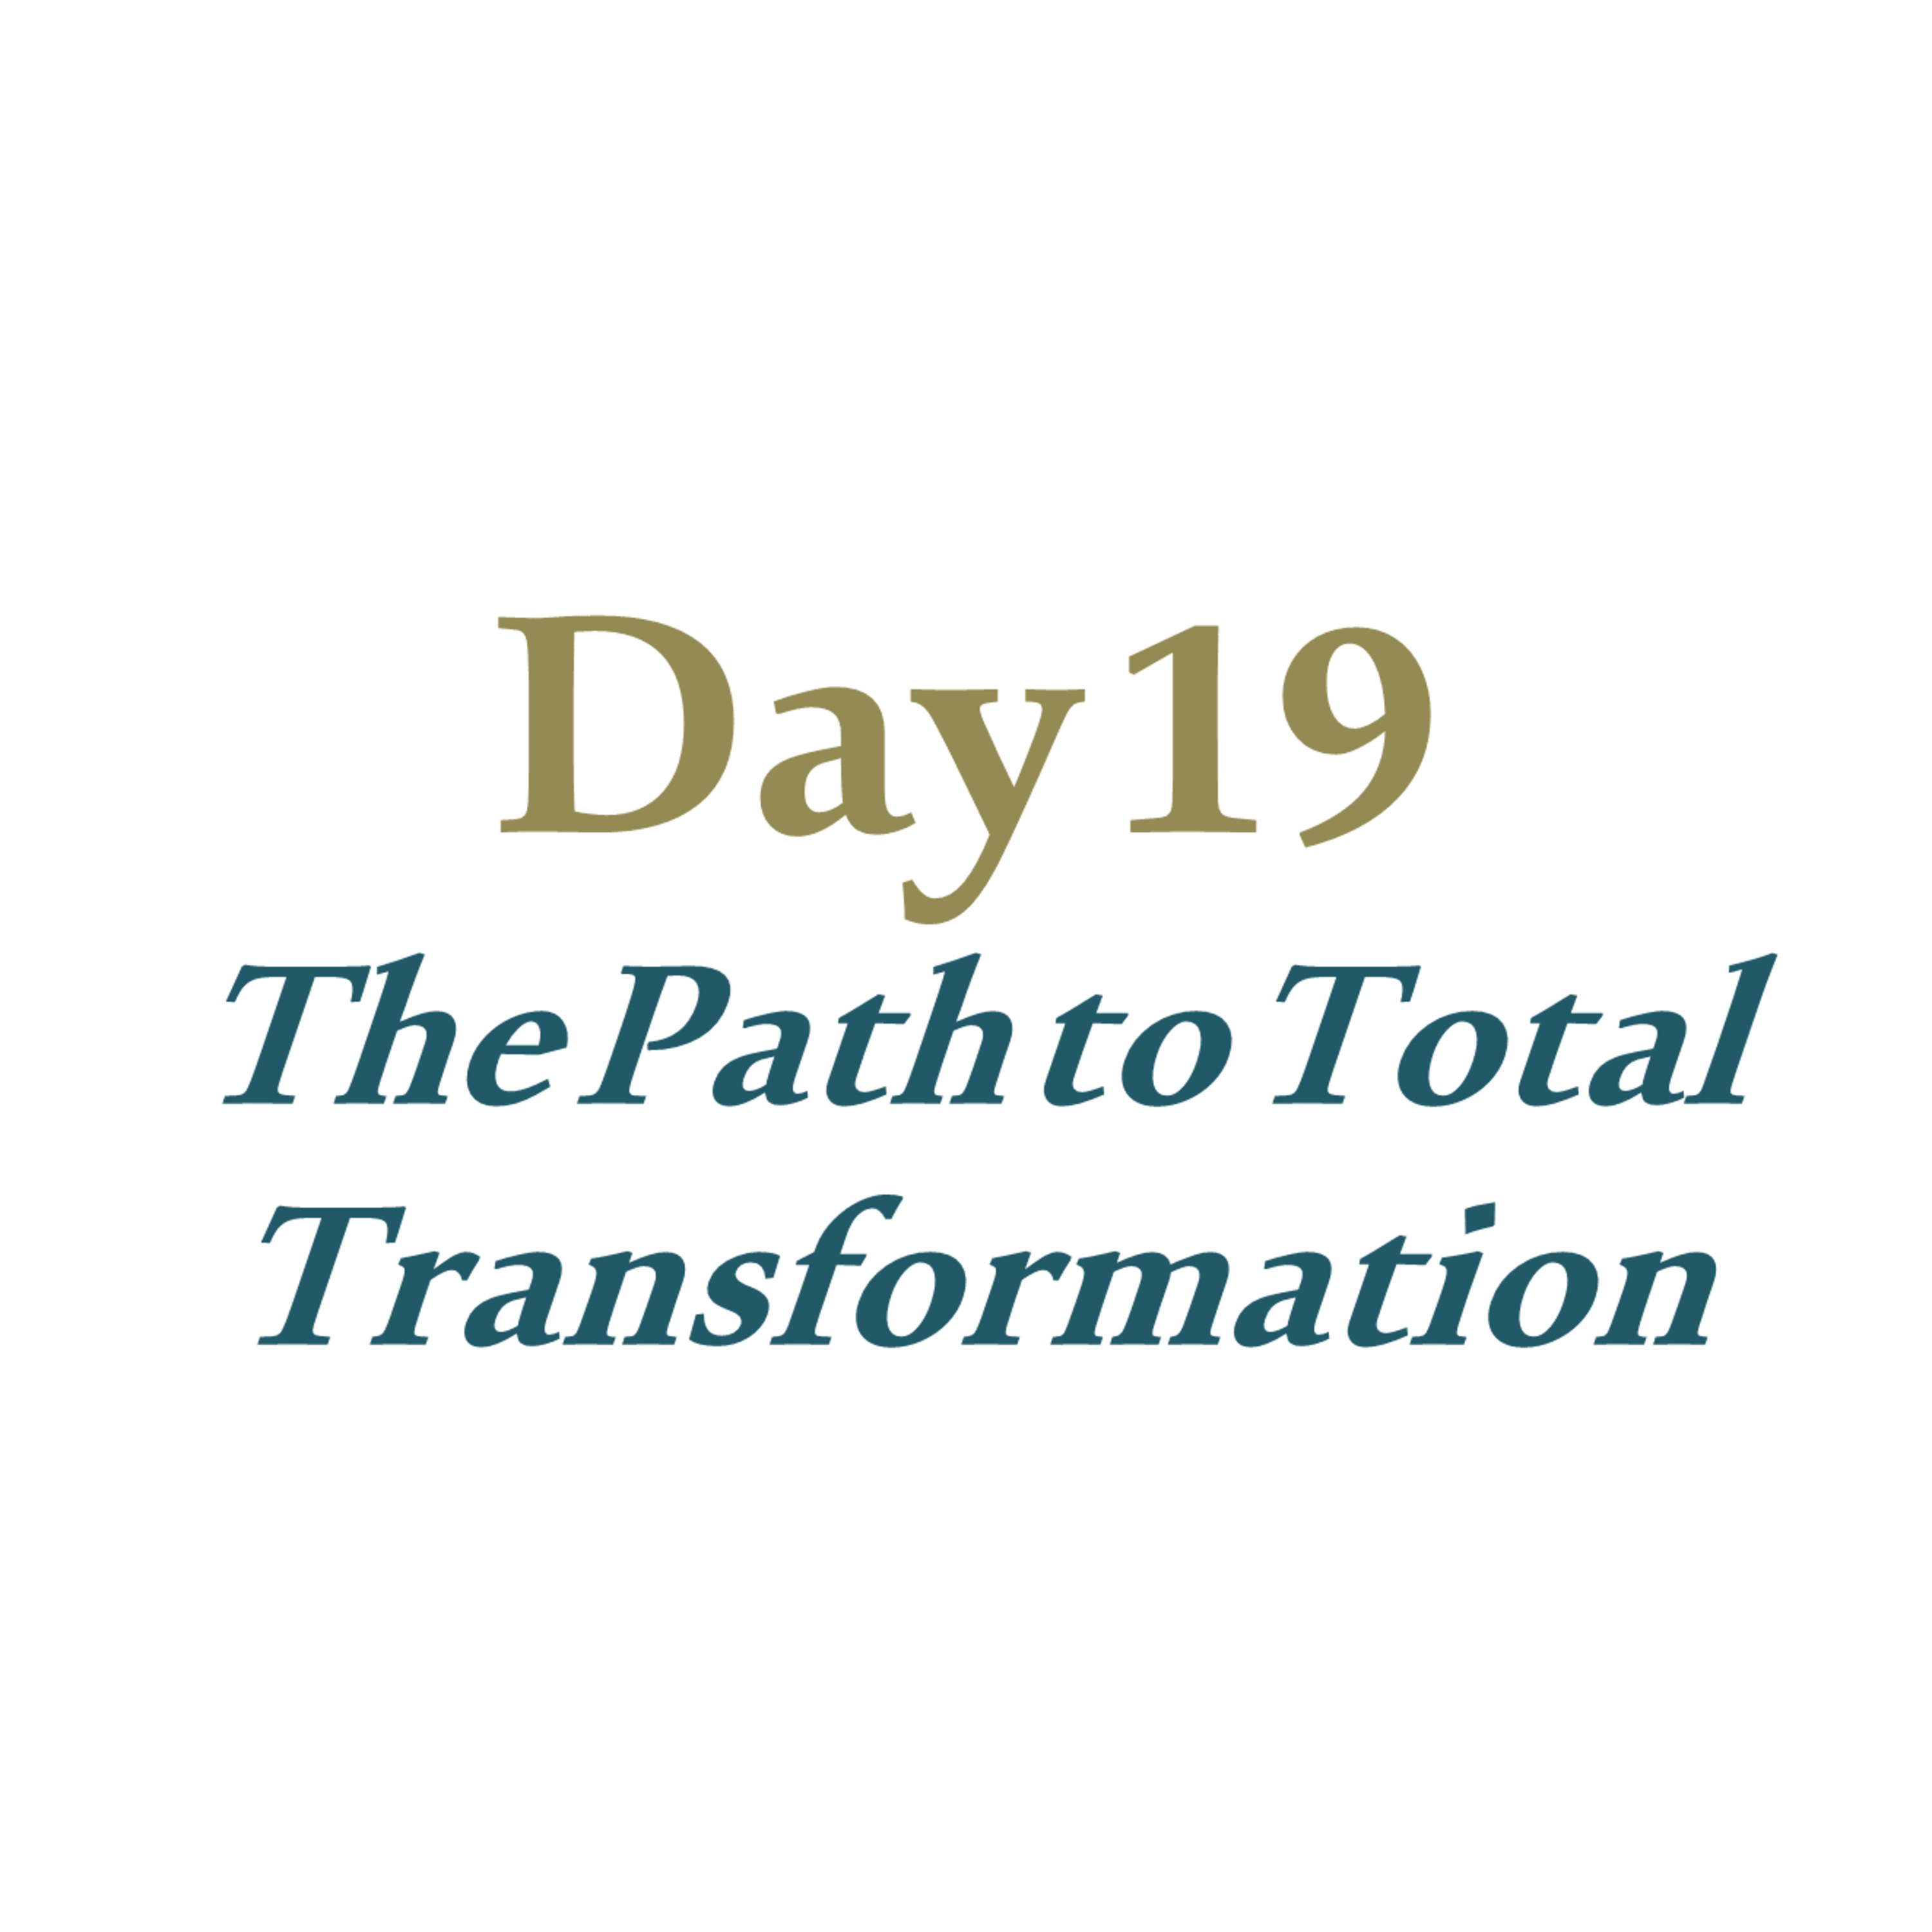 Day 19 - The Path to Total Transformation